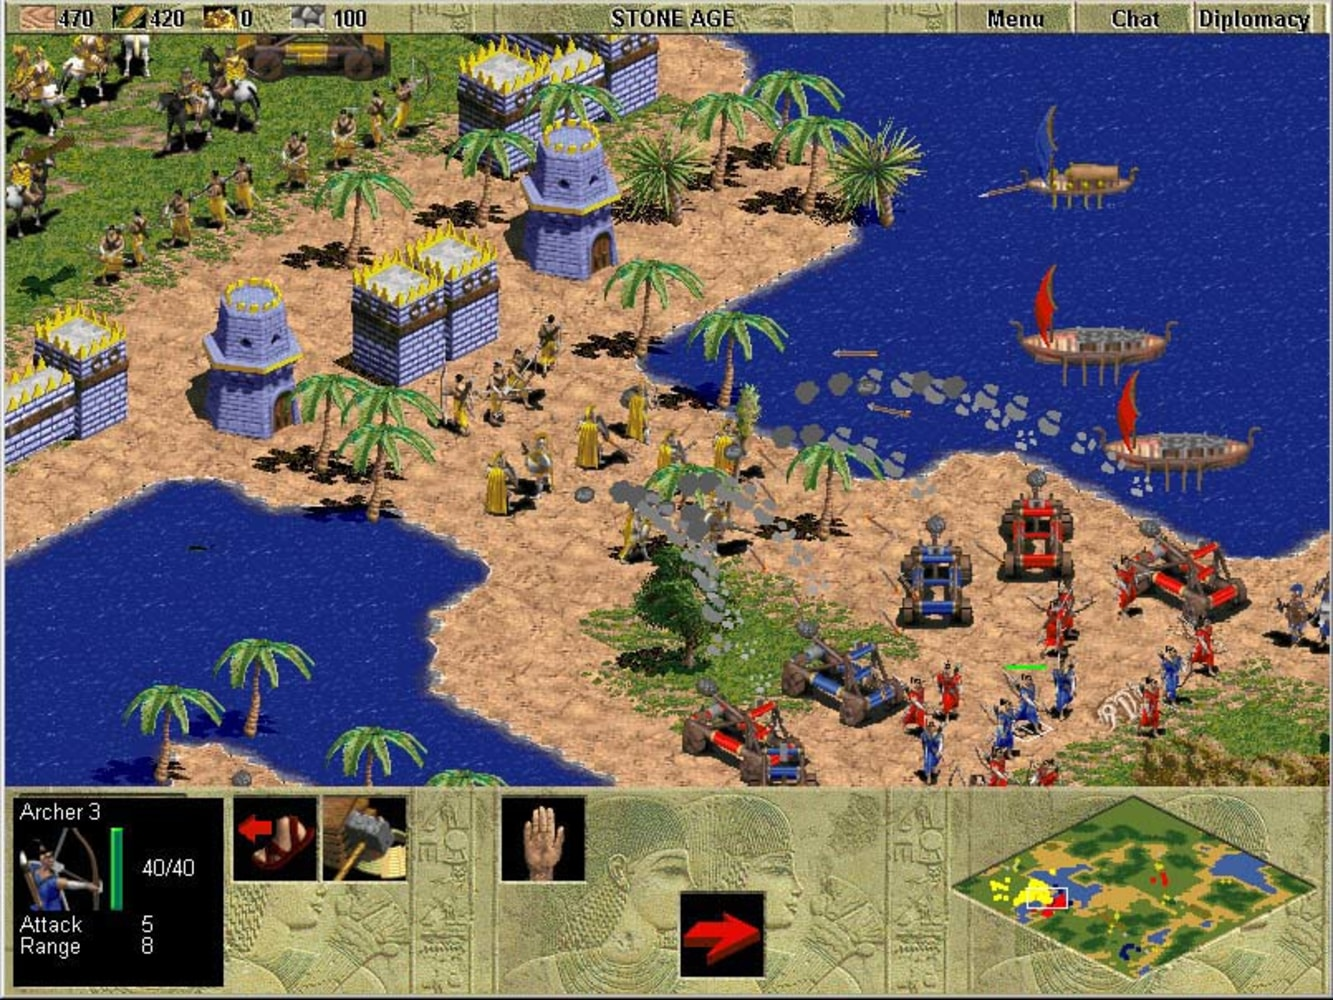 Top 10 Best Games Like Age of Empires - Nerd Bear